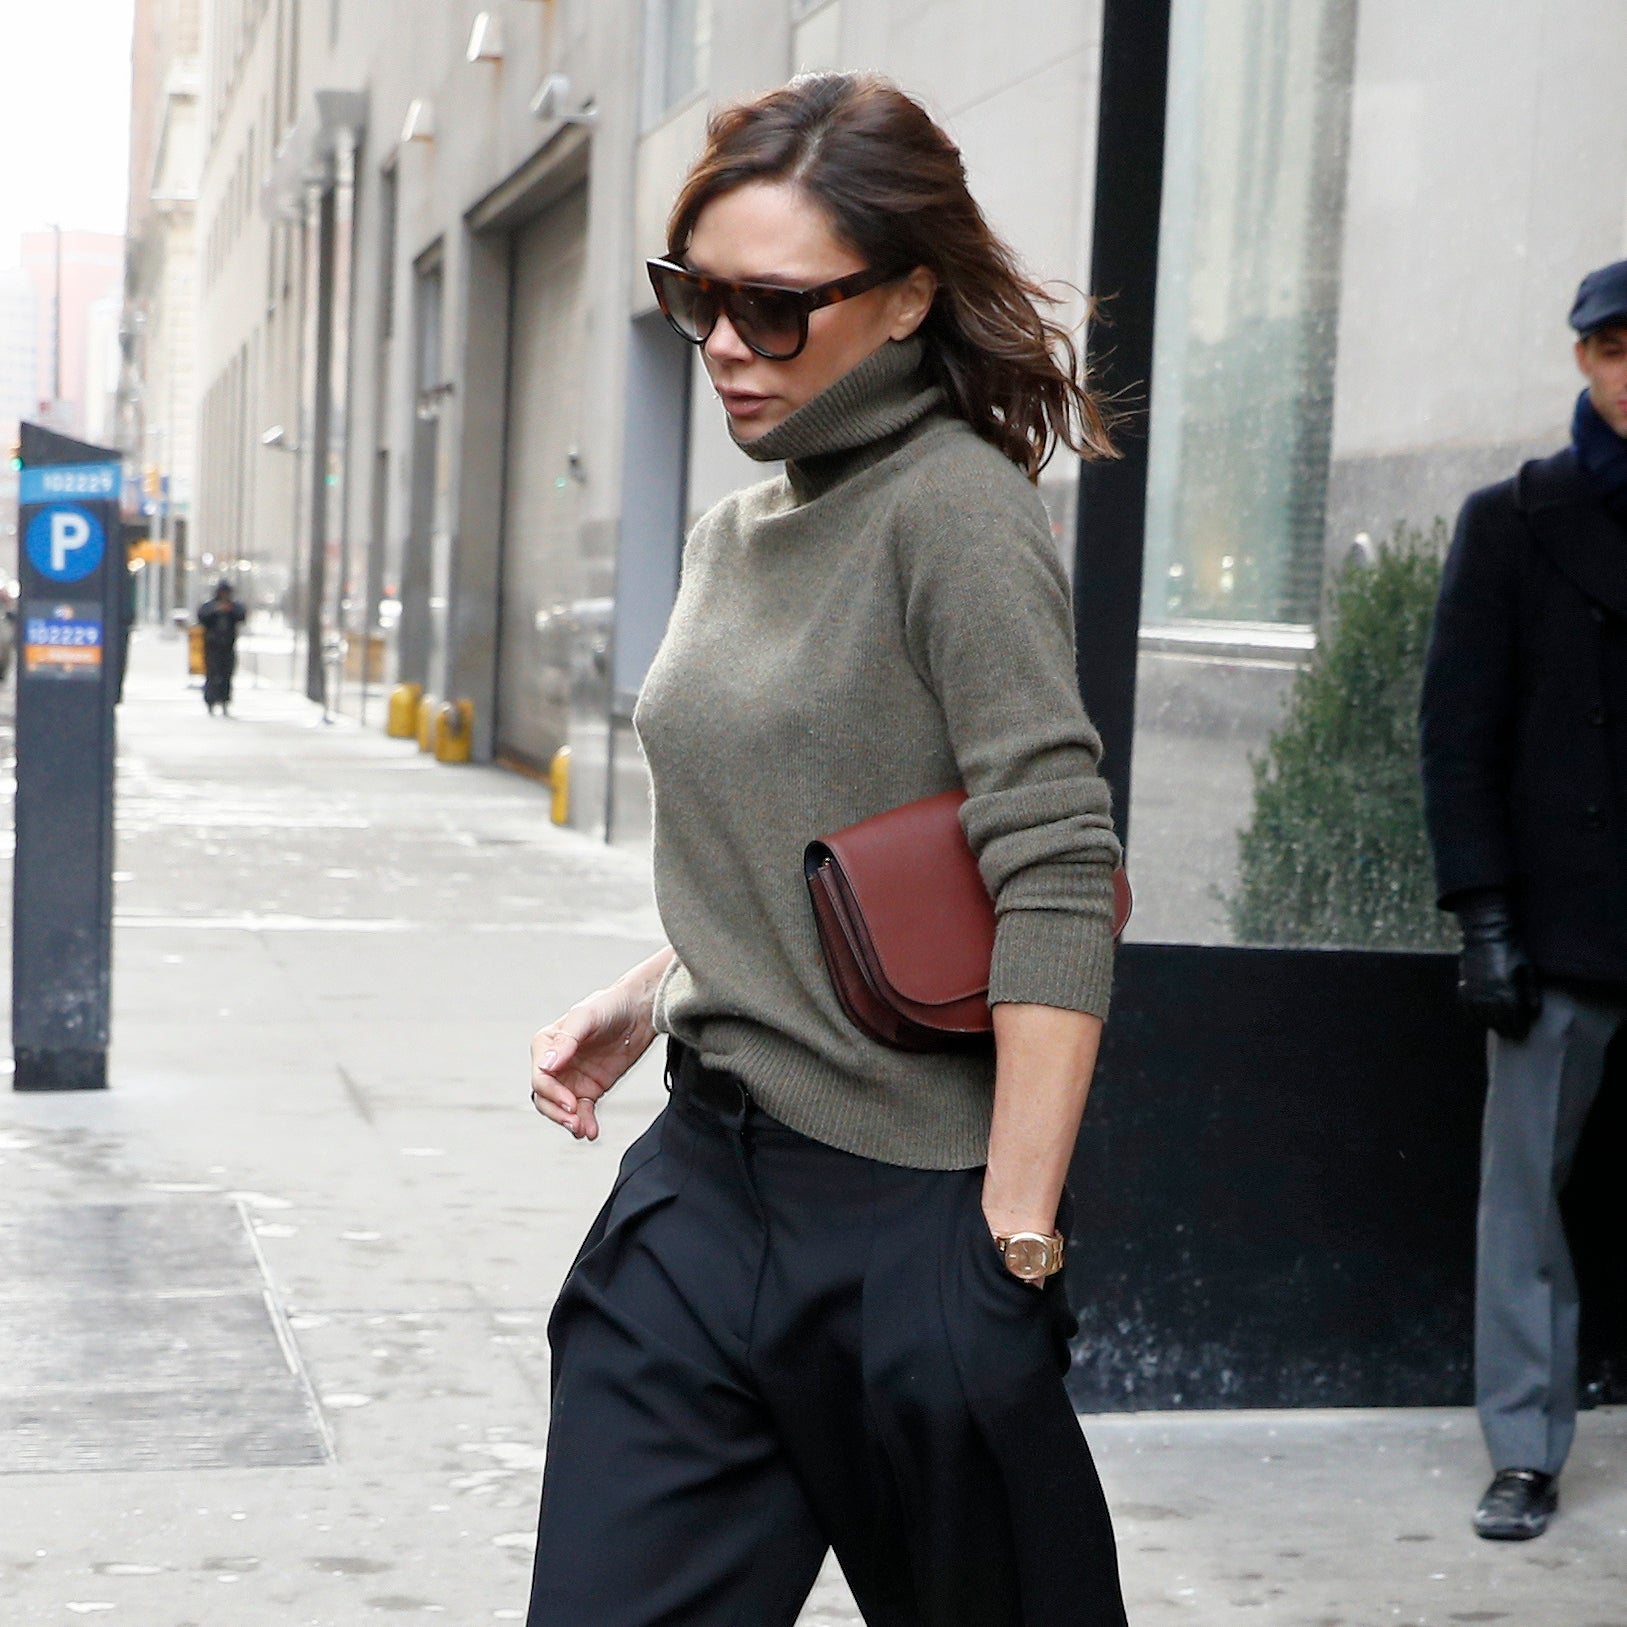 Fashion designer Victoria Beckham, wearing a green turtleneck and pants, as she leaves the Edition Hotel in New York City, New York, USA. Pictured: Victoria Beckham Ref: SPL1439657 110217 Picture by: Christopher Peterson/Splash News Splash News and Pictures Los Angeles: 310-821-2666 New York: 212-619-2666 London: 870-934-2666 photodesk@splashnews.com